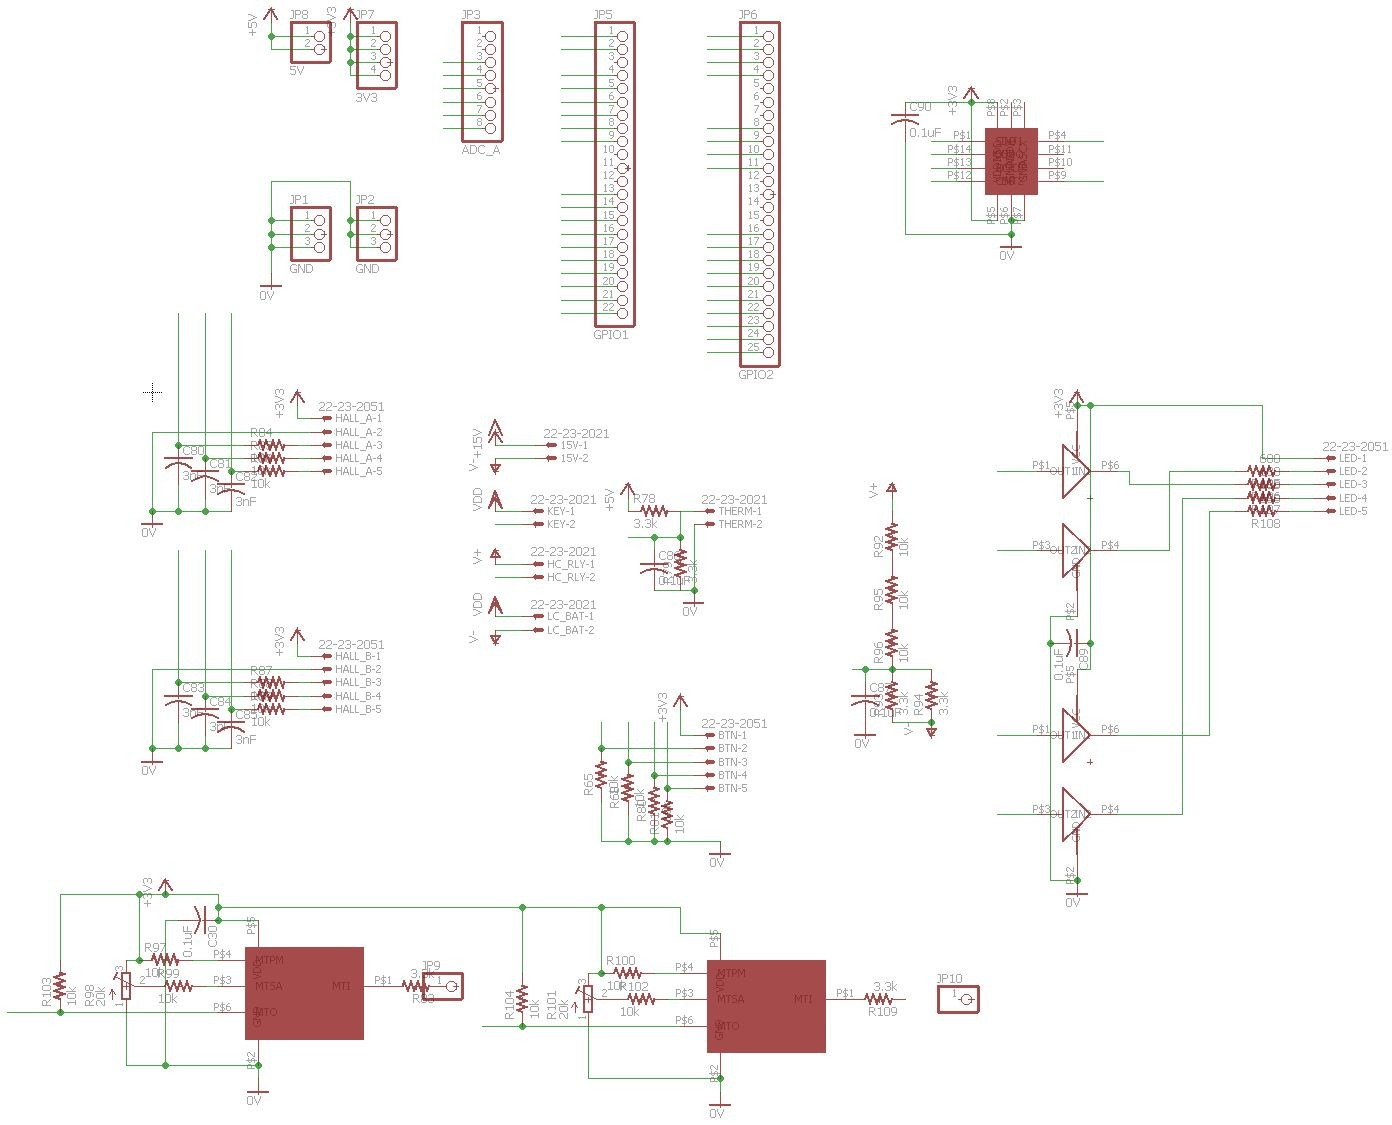 Sensors and connections schematic